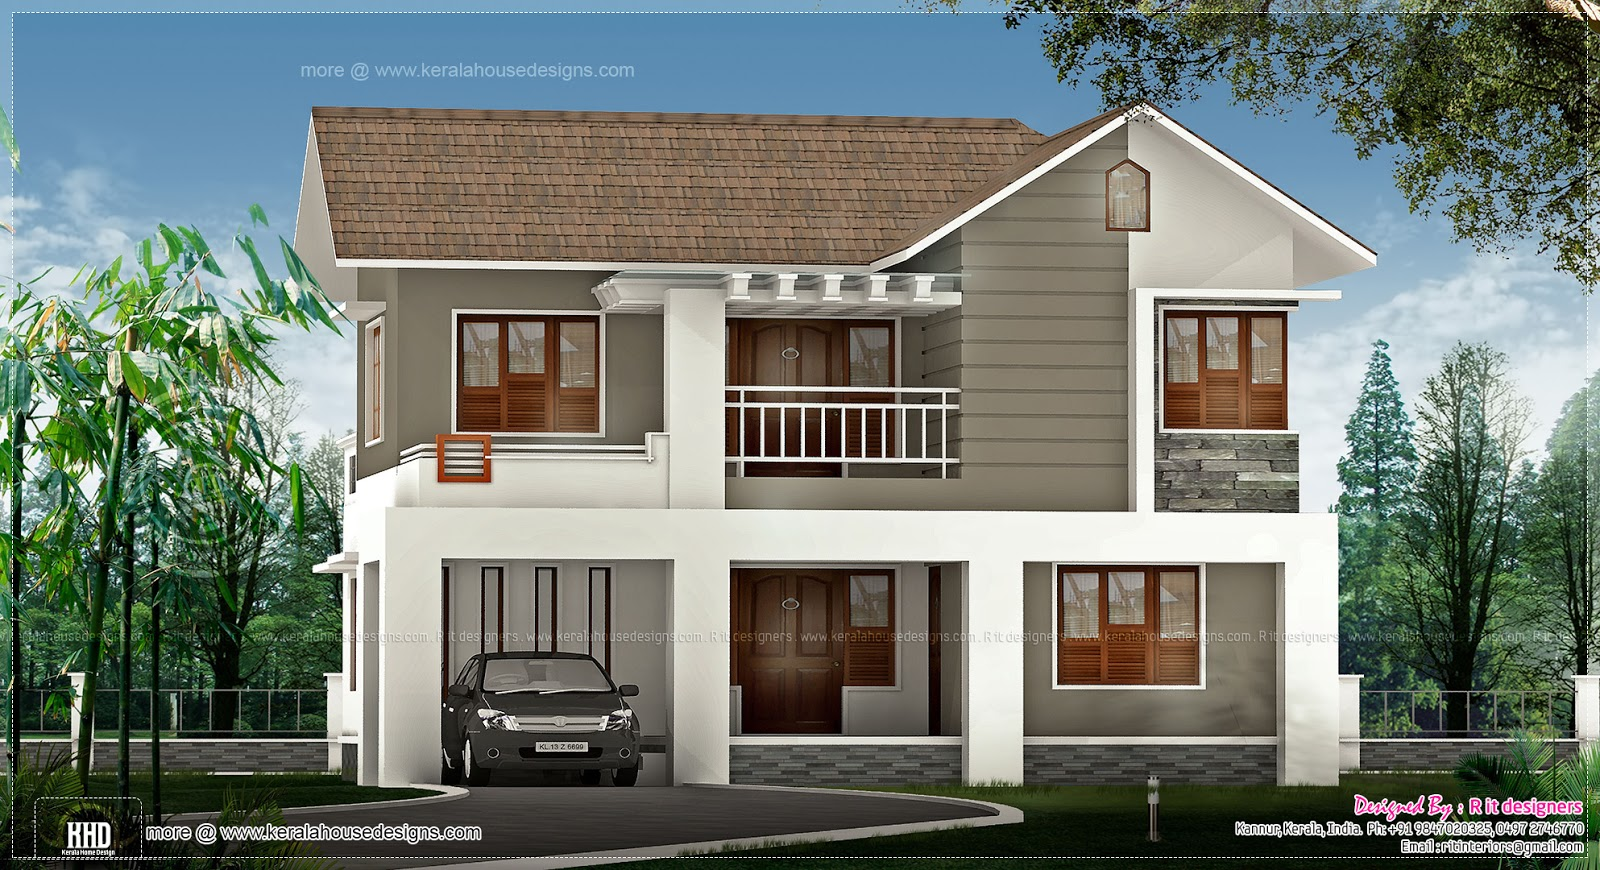 1829 sq ft home design in kannur kerala kerala home design and